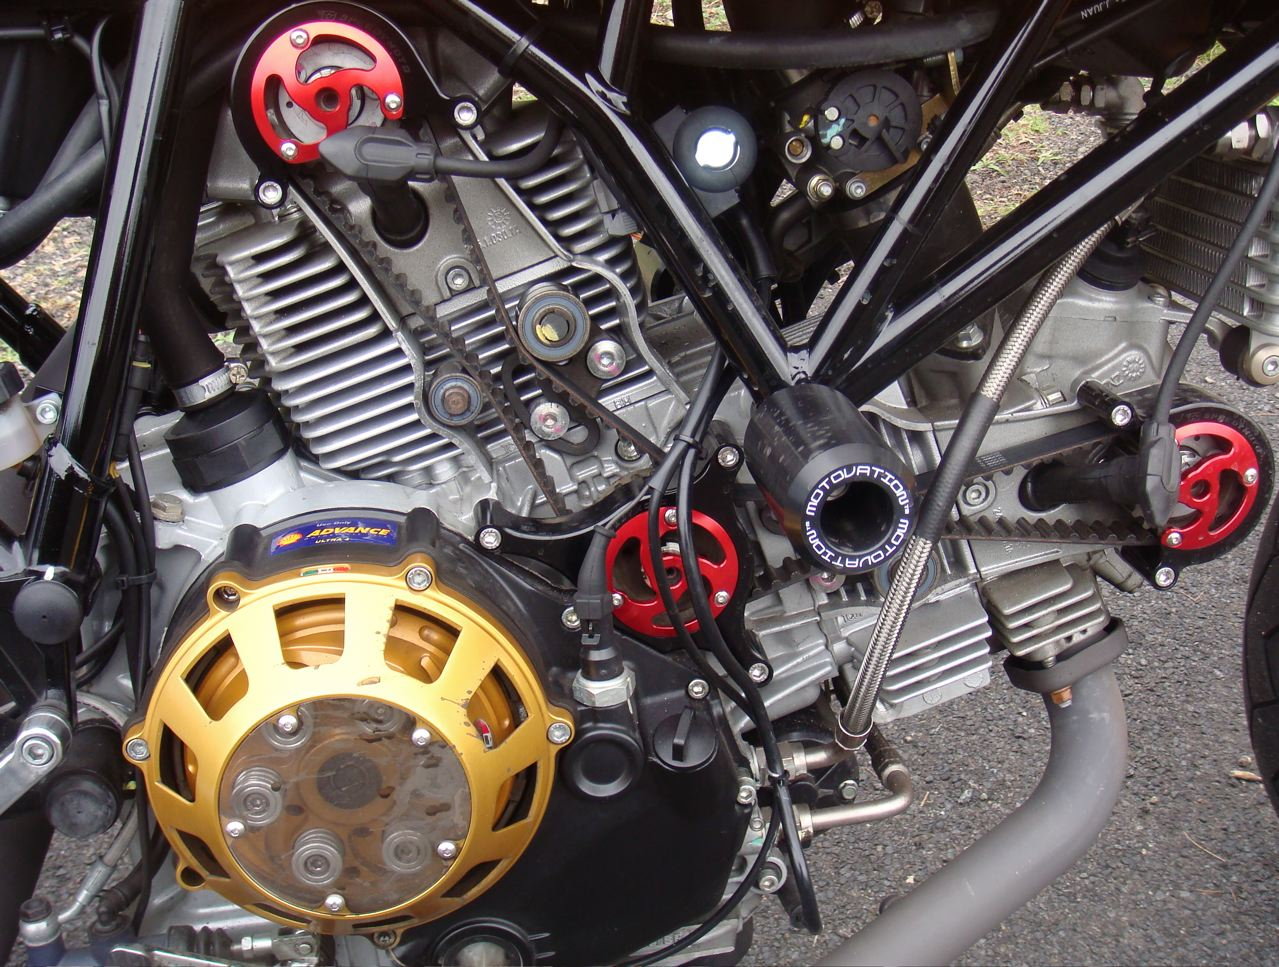 sport classic with rizoma timing belt covers - page 3 - ducati.ms